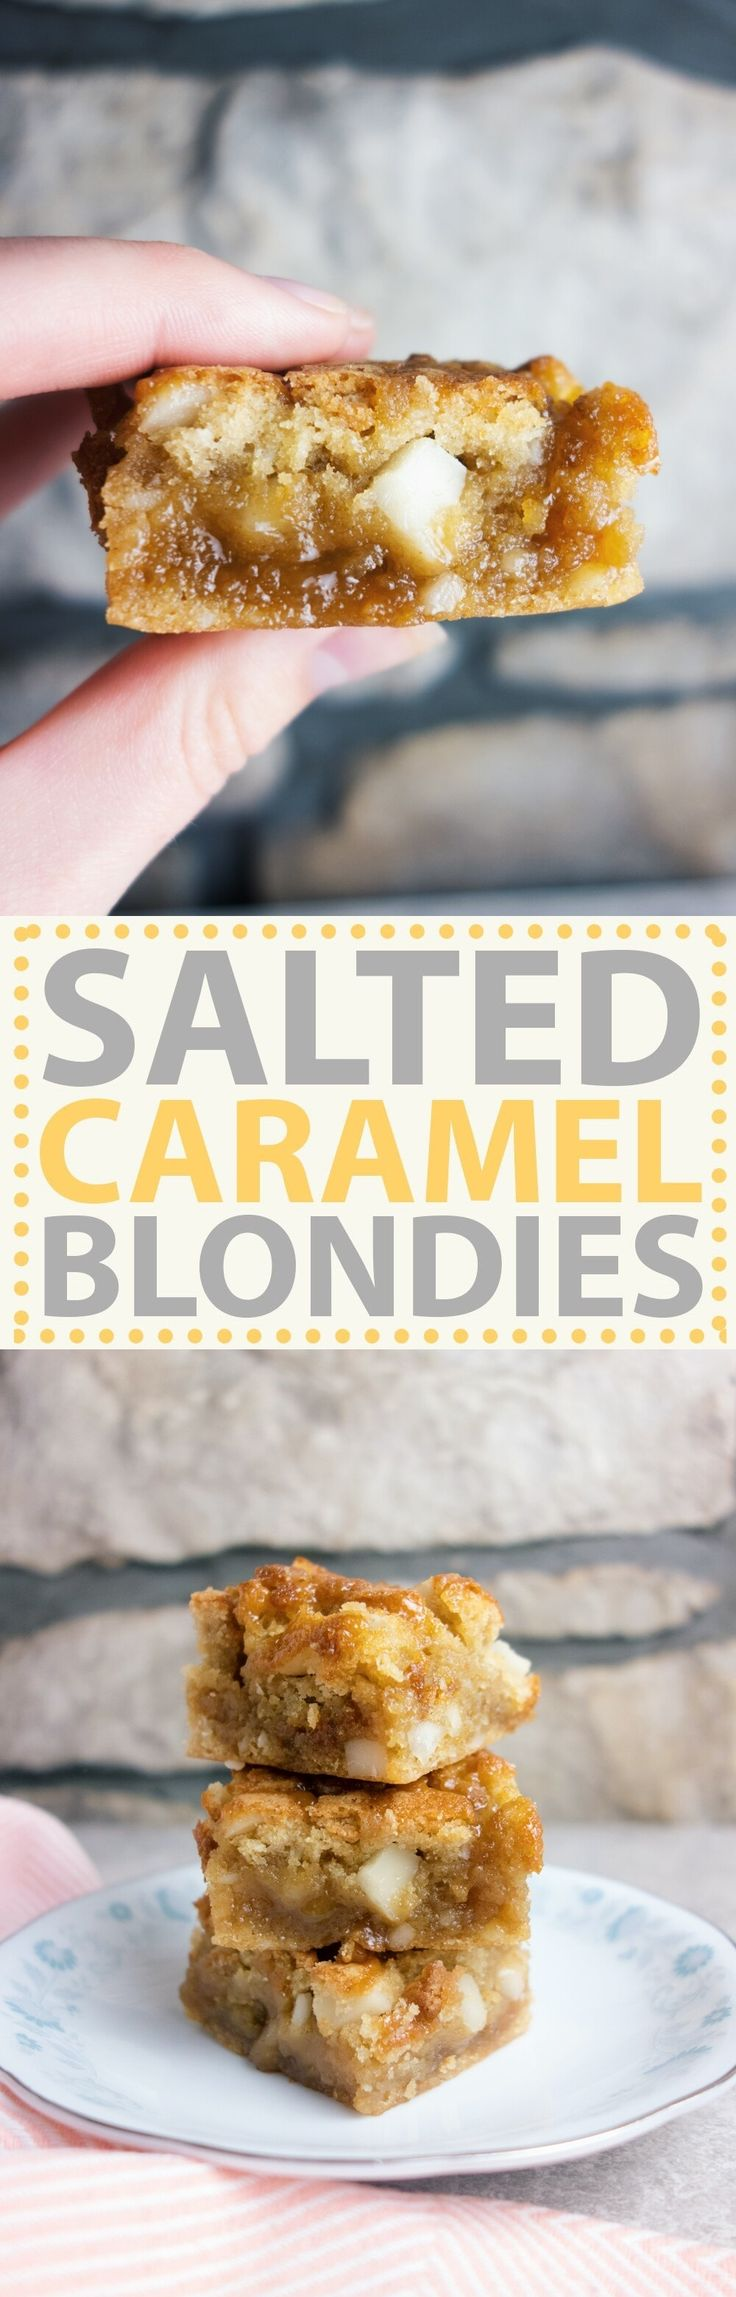 Salted Caramel Macadamia Blondies: Gooey, rich butterscotch flavoured blondies with macadamia nuts and a layer of salted caramel sauce!